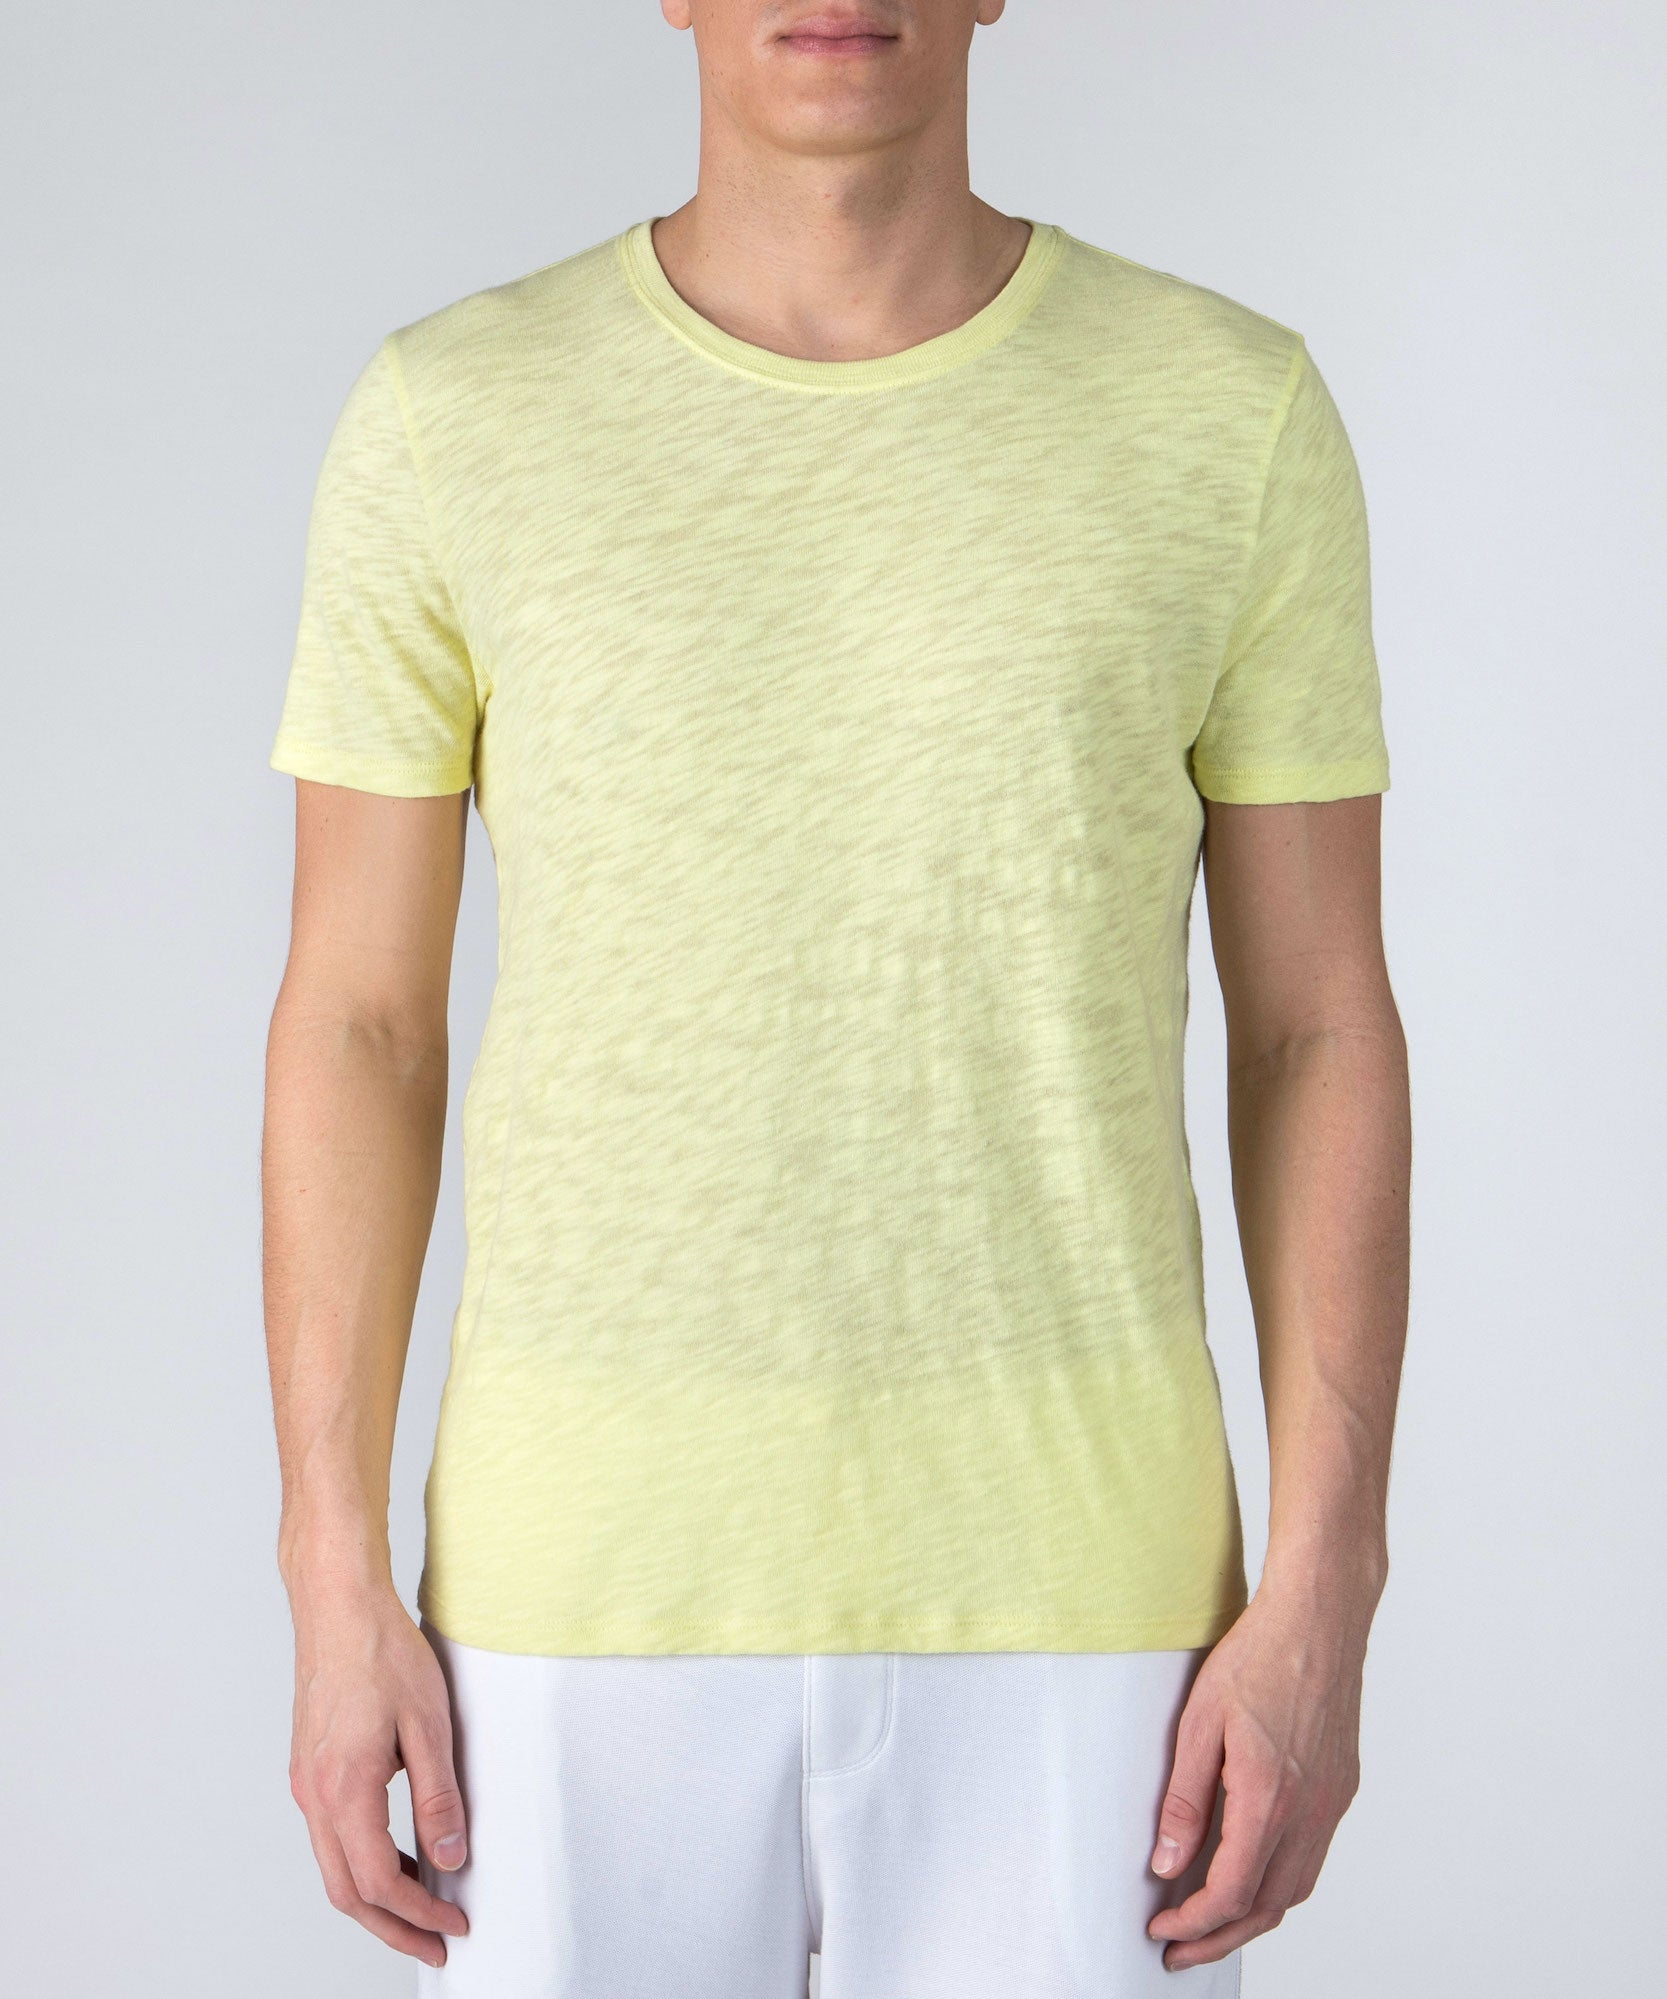 Lemon Twist Slub Jersey Crew Neck Tee - Men's Cotton Short Sleeve Tee by ATM Anthony Thomas Melillo